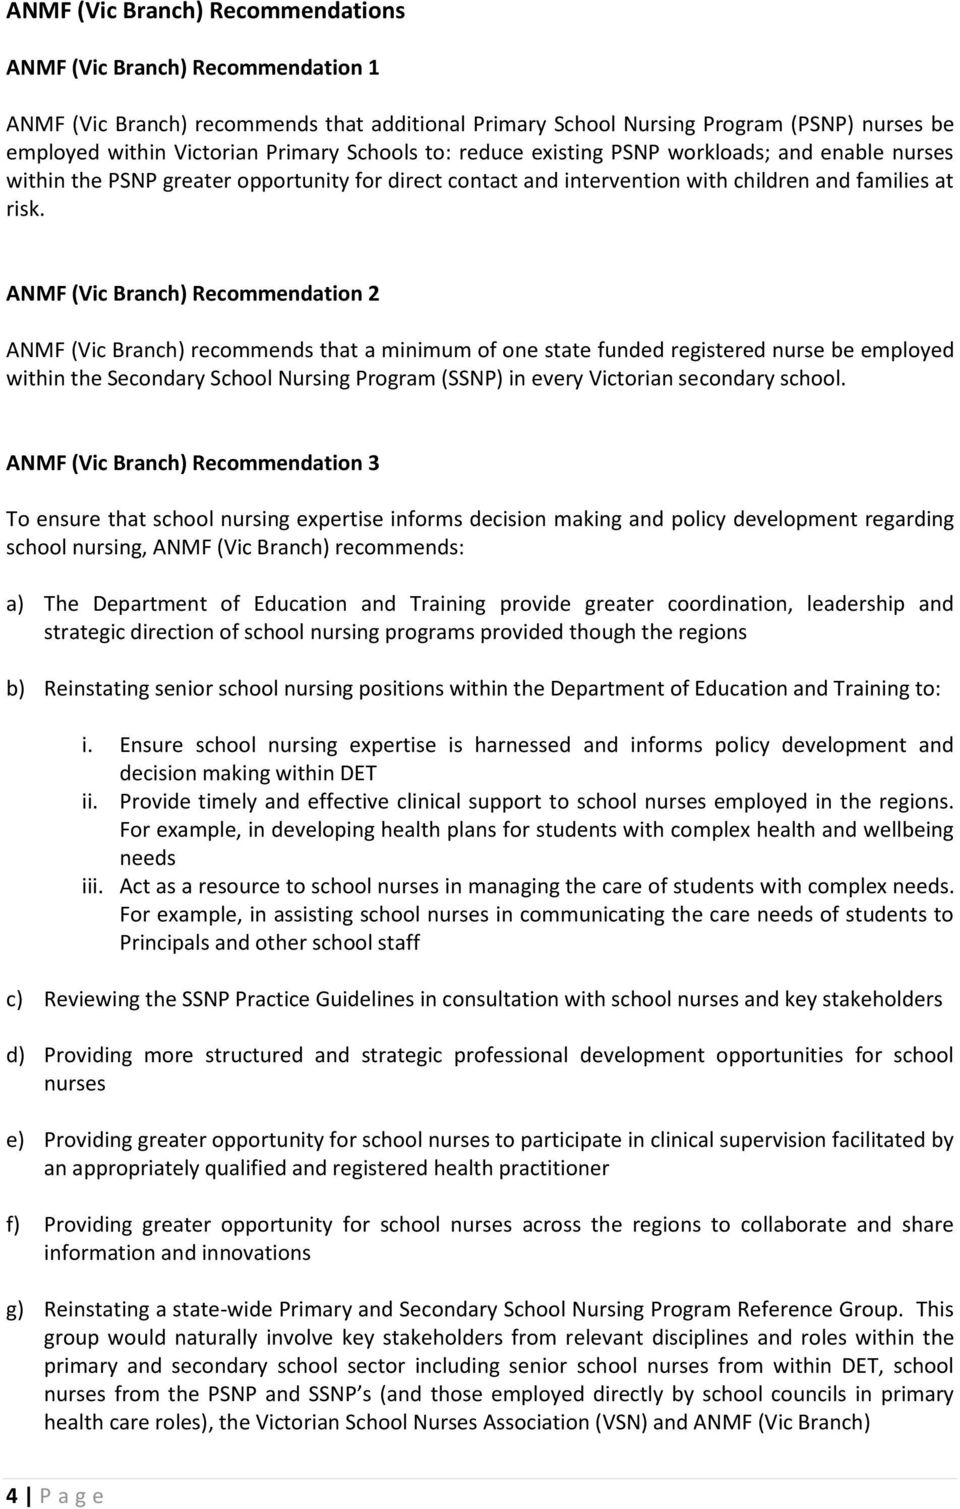 ANMF (Vic Branch) Recommendation 2 ANMF (Vic Branch) recommends that a minimum of one state funded registered nurse be employed within the Secondary School Nursing Program (SSNP) in every Victorian